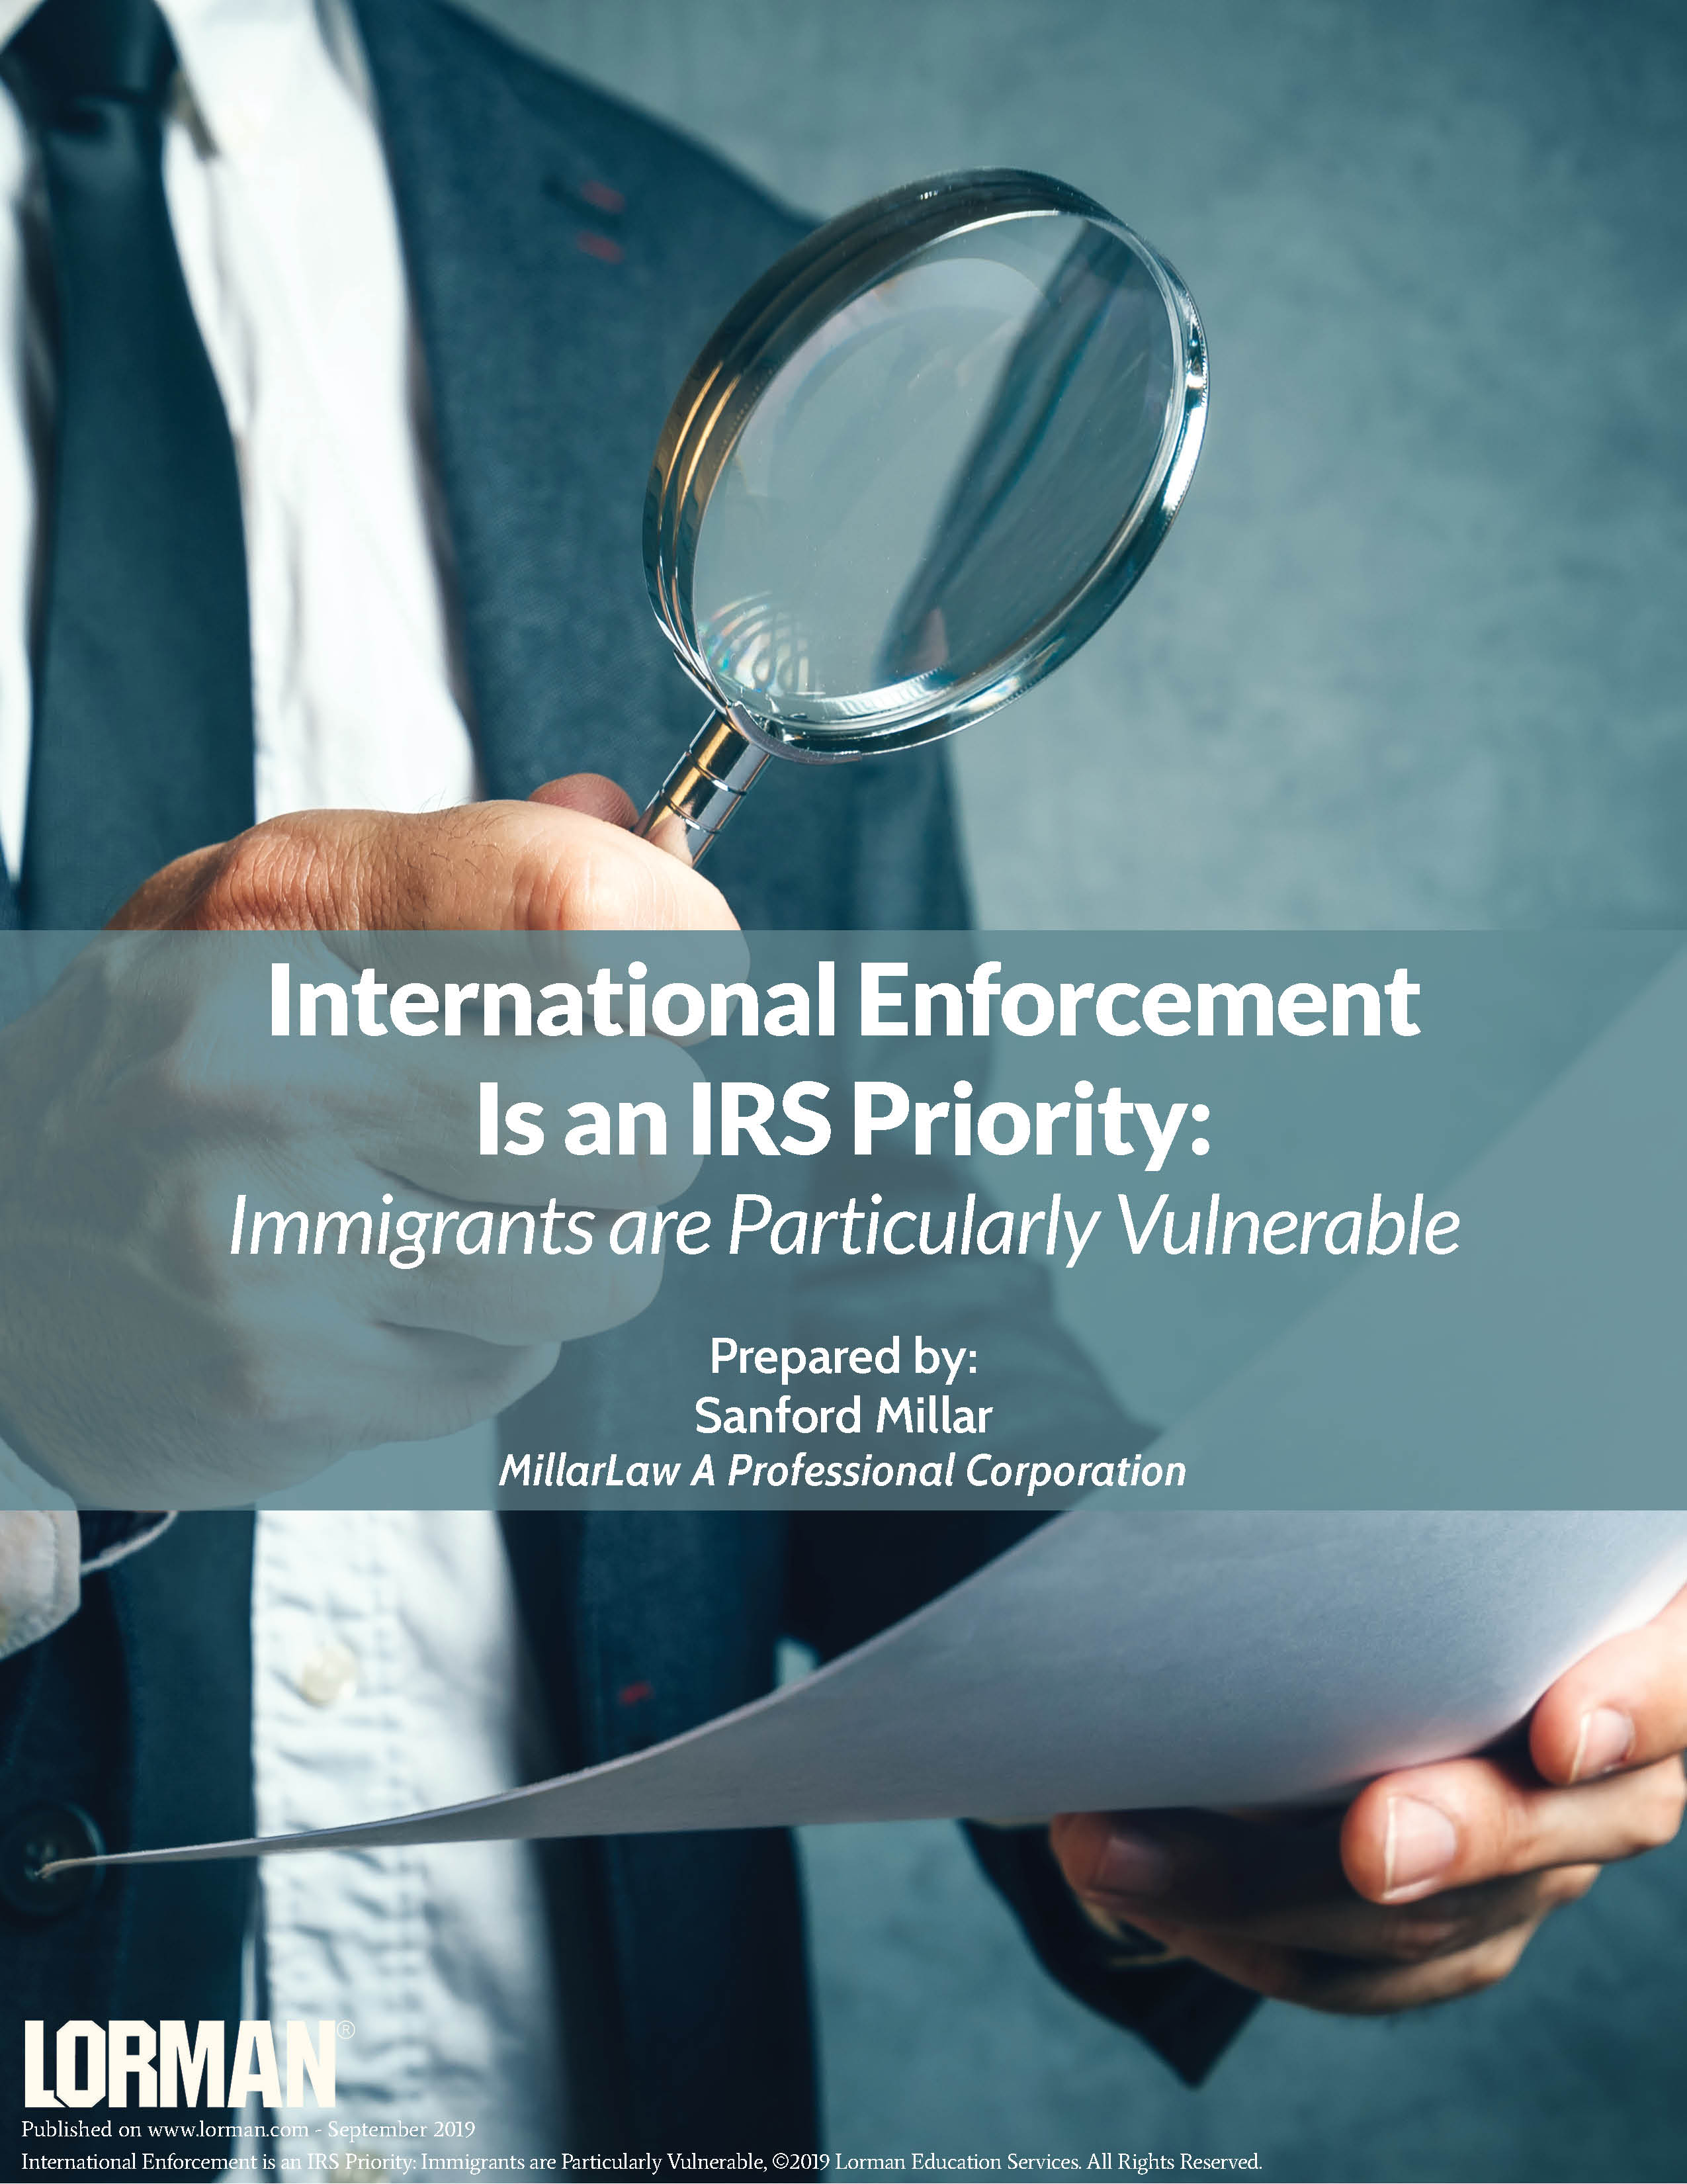 International Enforcement is an IRS Priority